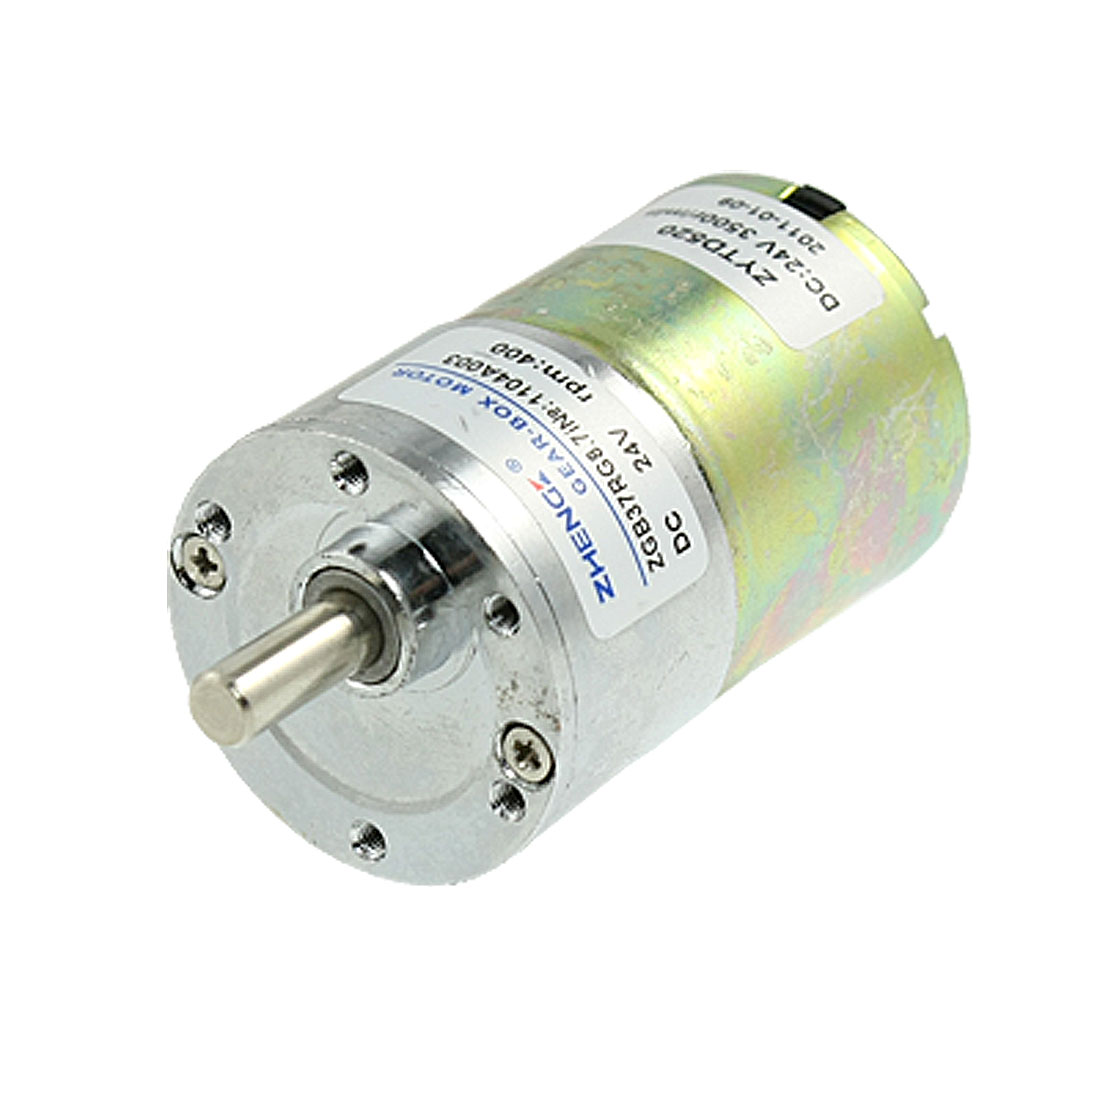 400RPM Output Speed 37mm Diameter 24V 0.33A DC Geared Motor